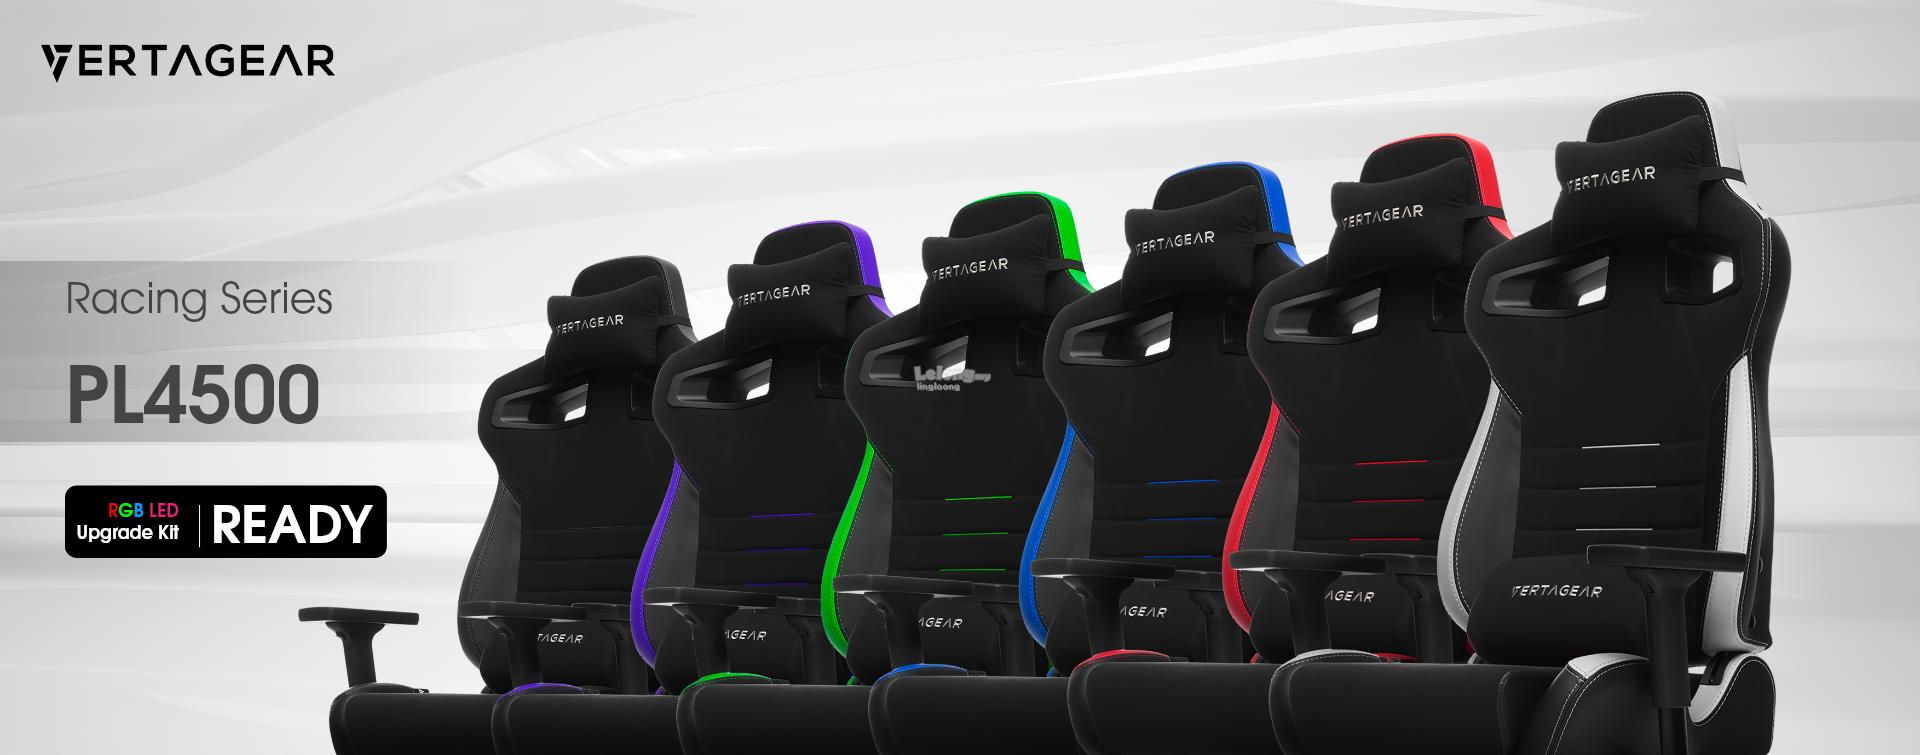 # VERTAGEAR Racing Series P-Line PL4500 Gaming Chair # 5 Colors Avlble